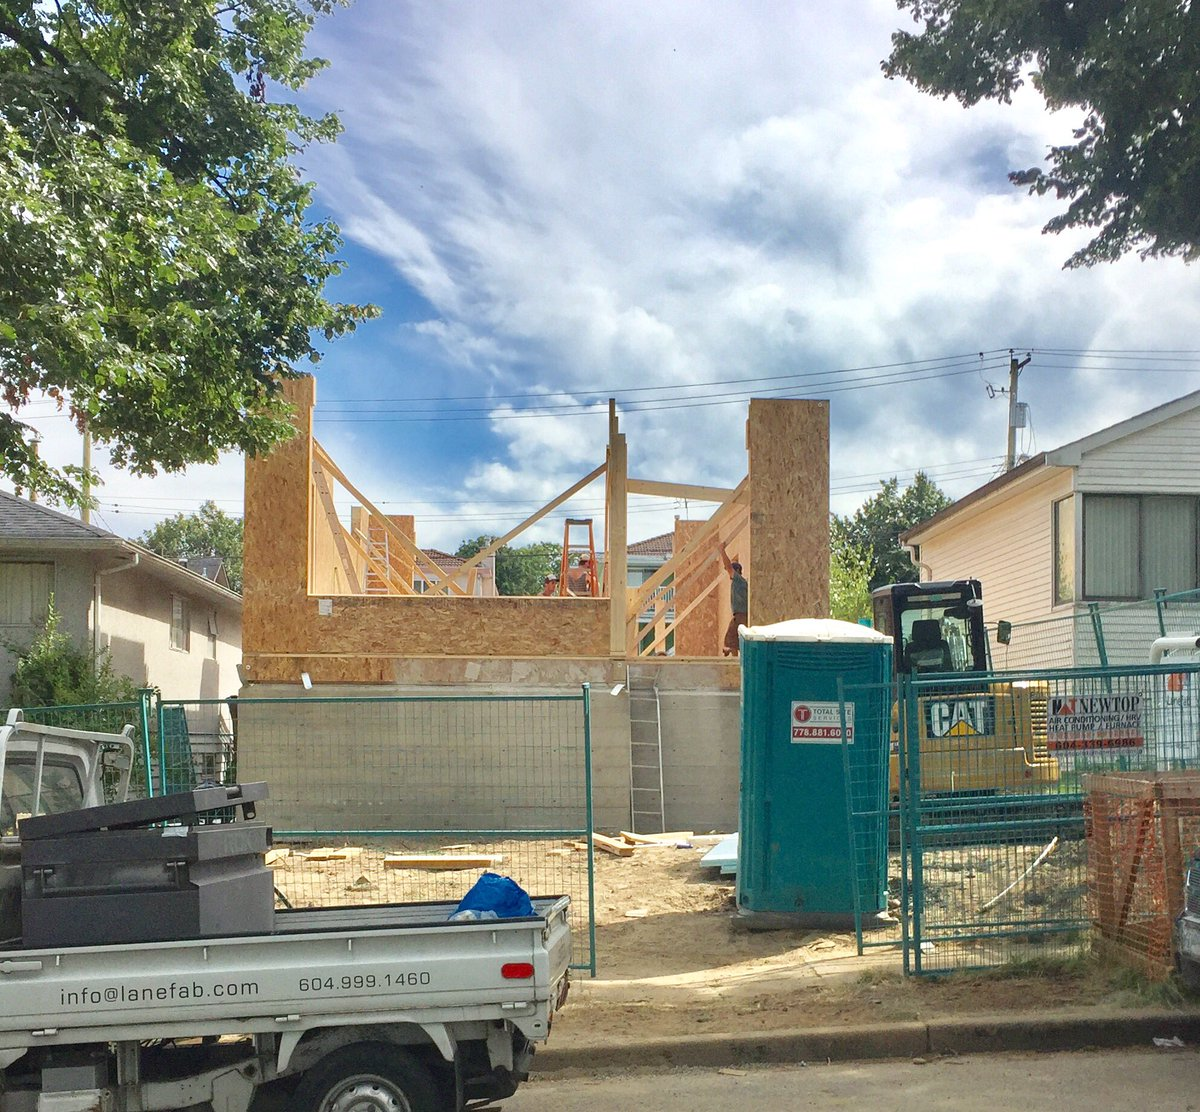 Prefab panels being installed at the E.37th Passive House